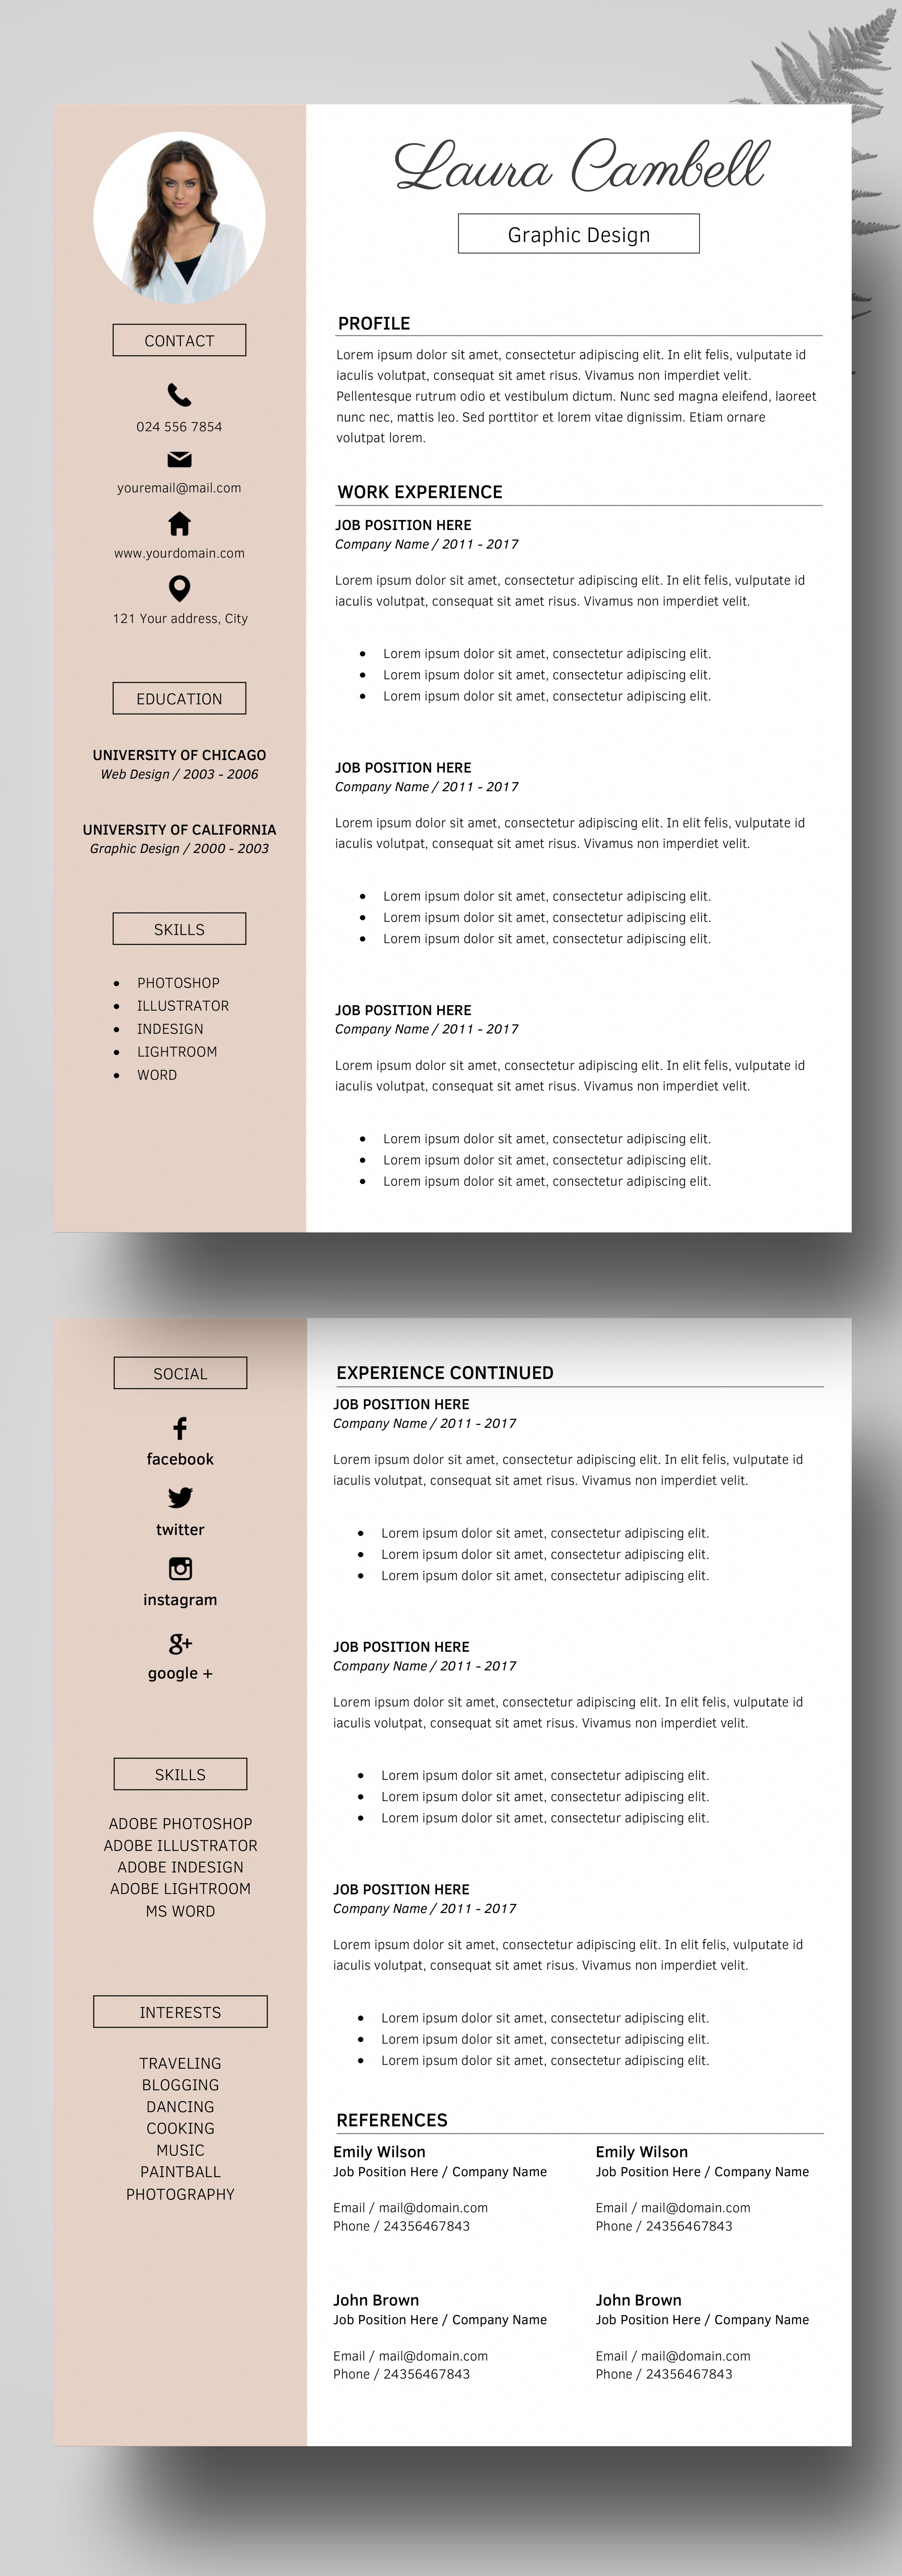 modern resume template  cv template for word  cover letter  u0026 references   icons  professional